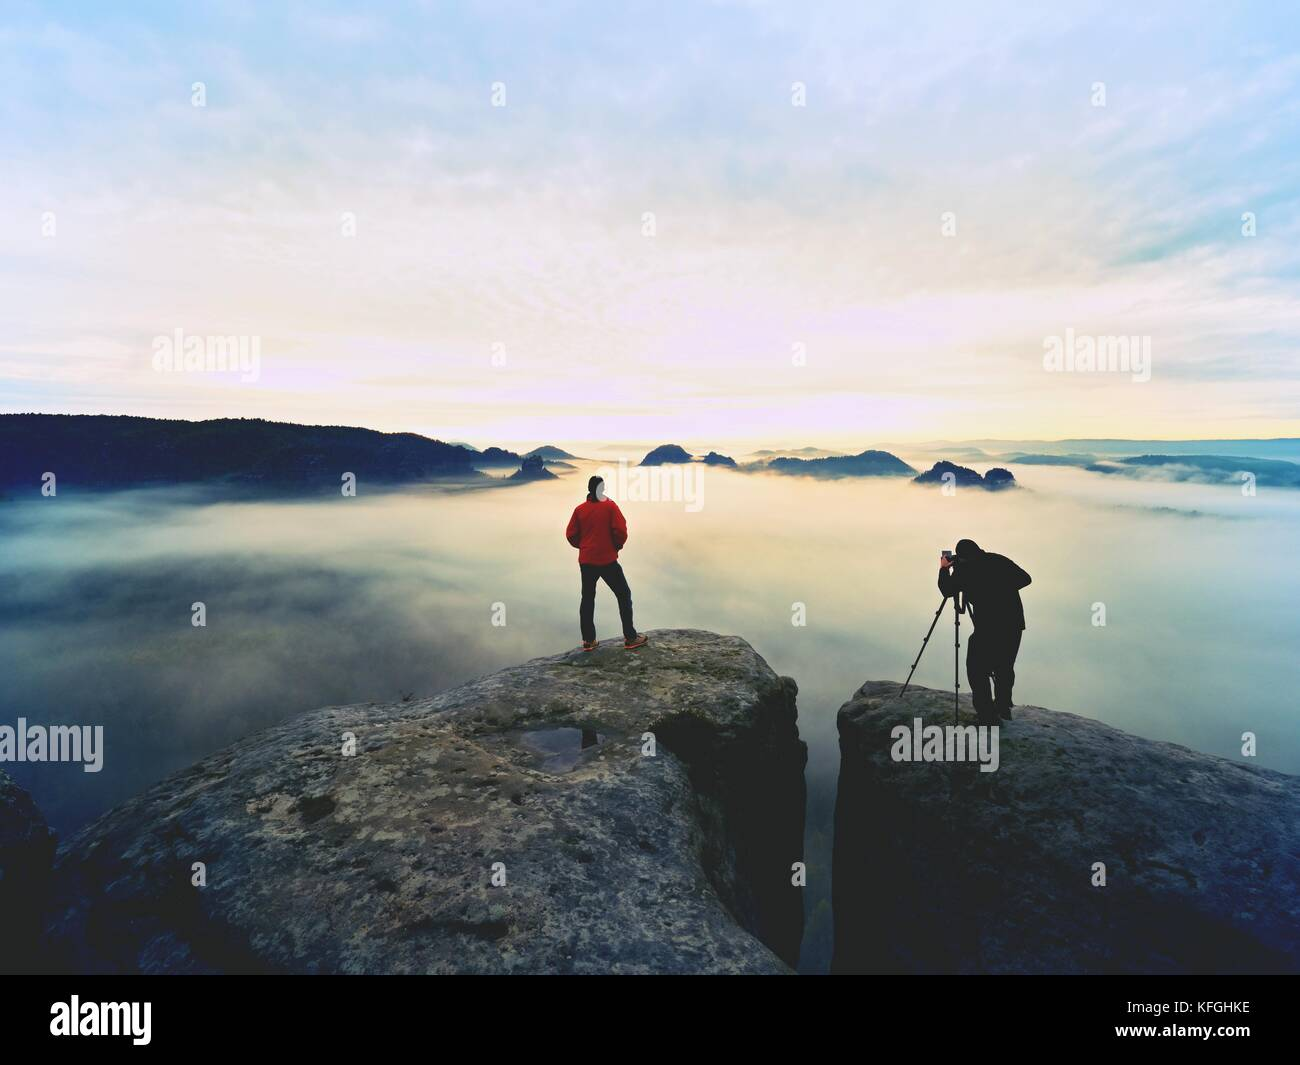 Silhouettes of man photographers. Men on mountain. Peak  with two men taking photos in autumn morning sunrise - Stock Image